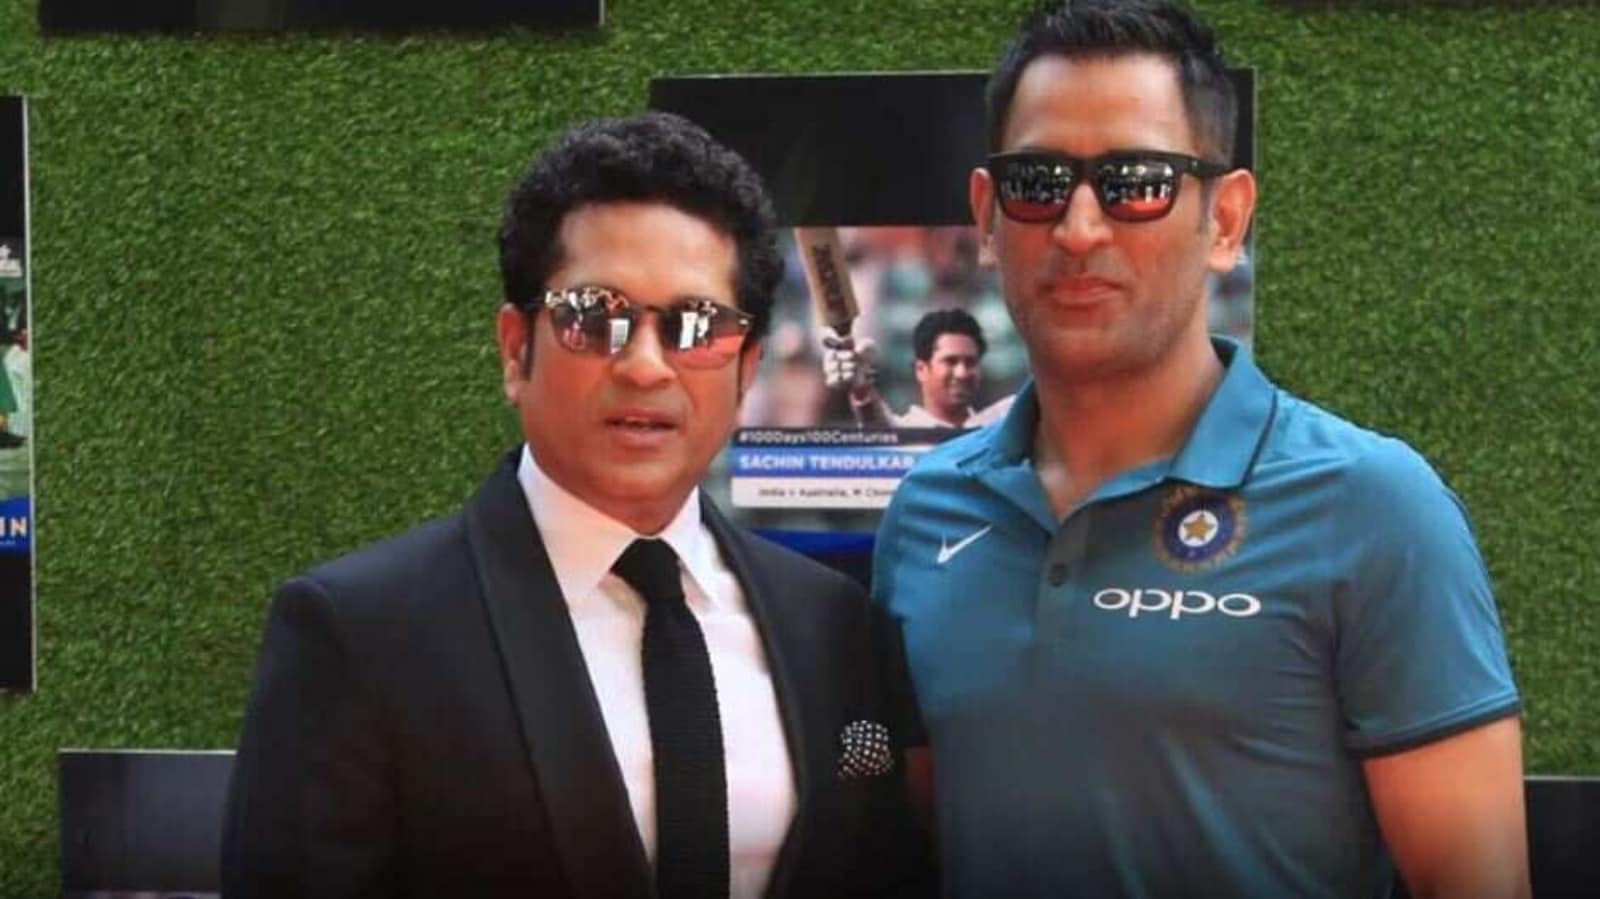 Tendulkar suggested Dhoni's name to lead India, reveals former BCCI president - Hindustan Times